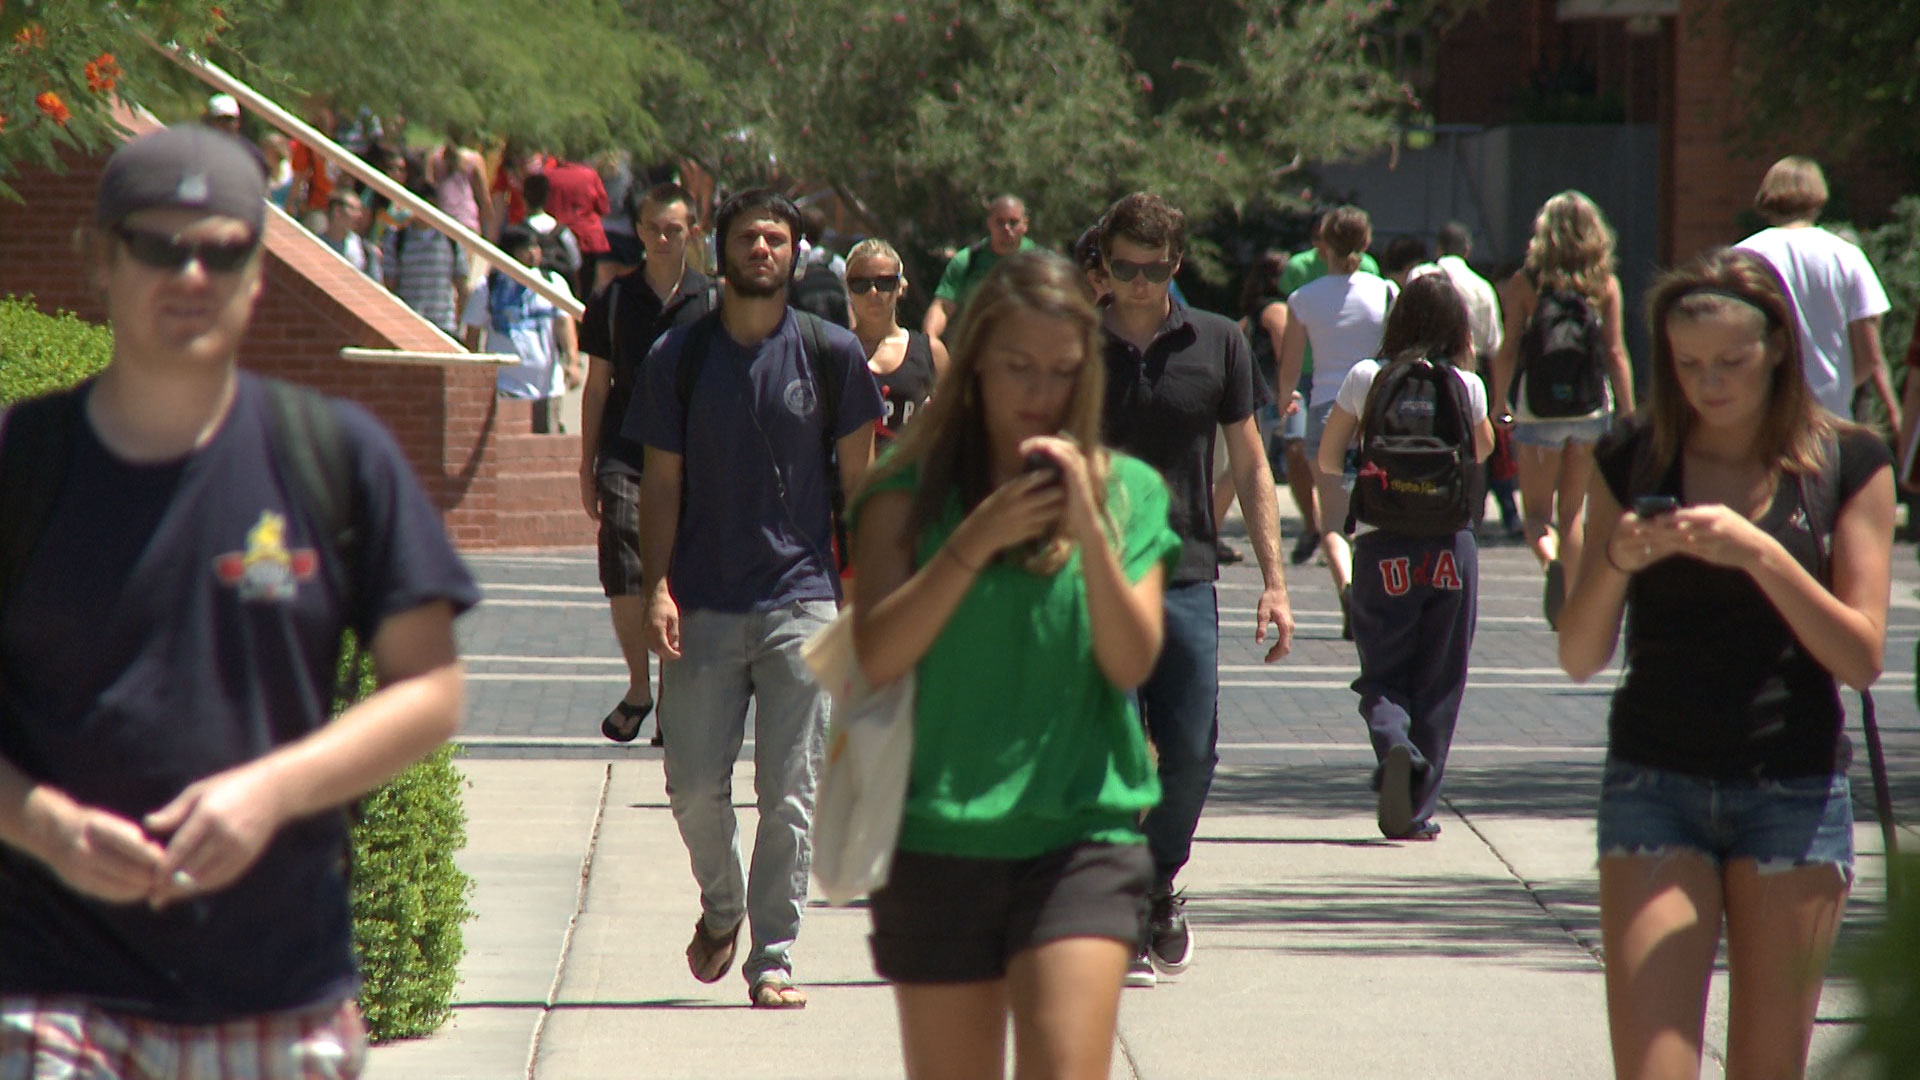 Students walk on campus at the University of Arizona.